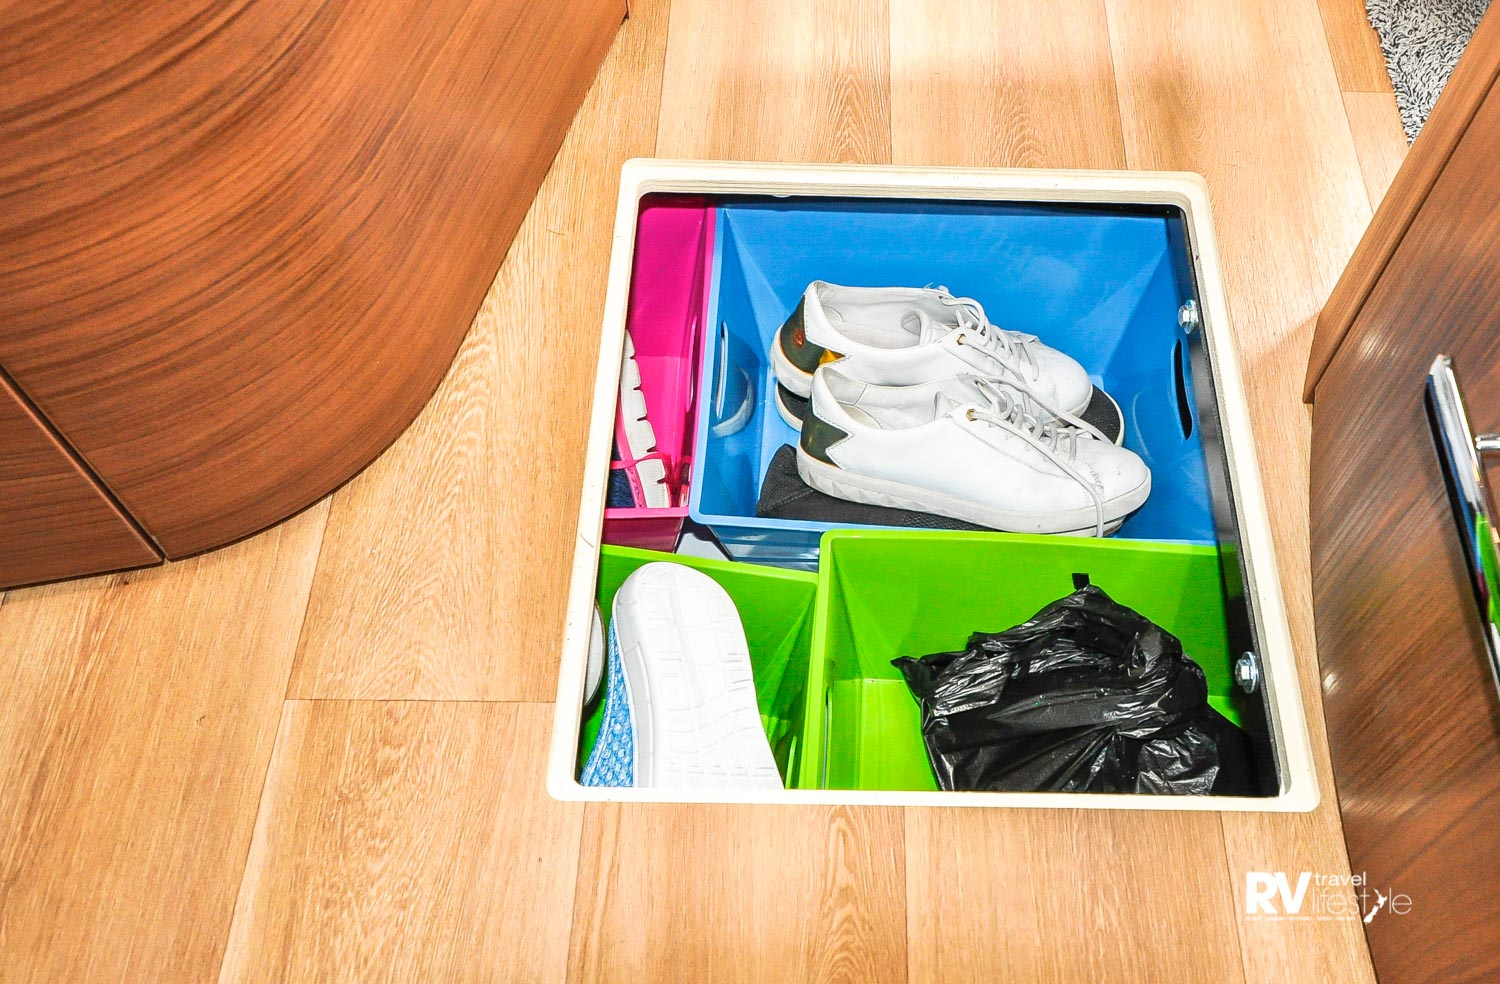 Underfloor shoe locker